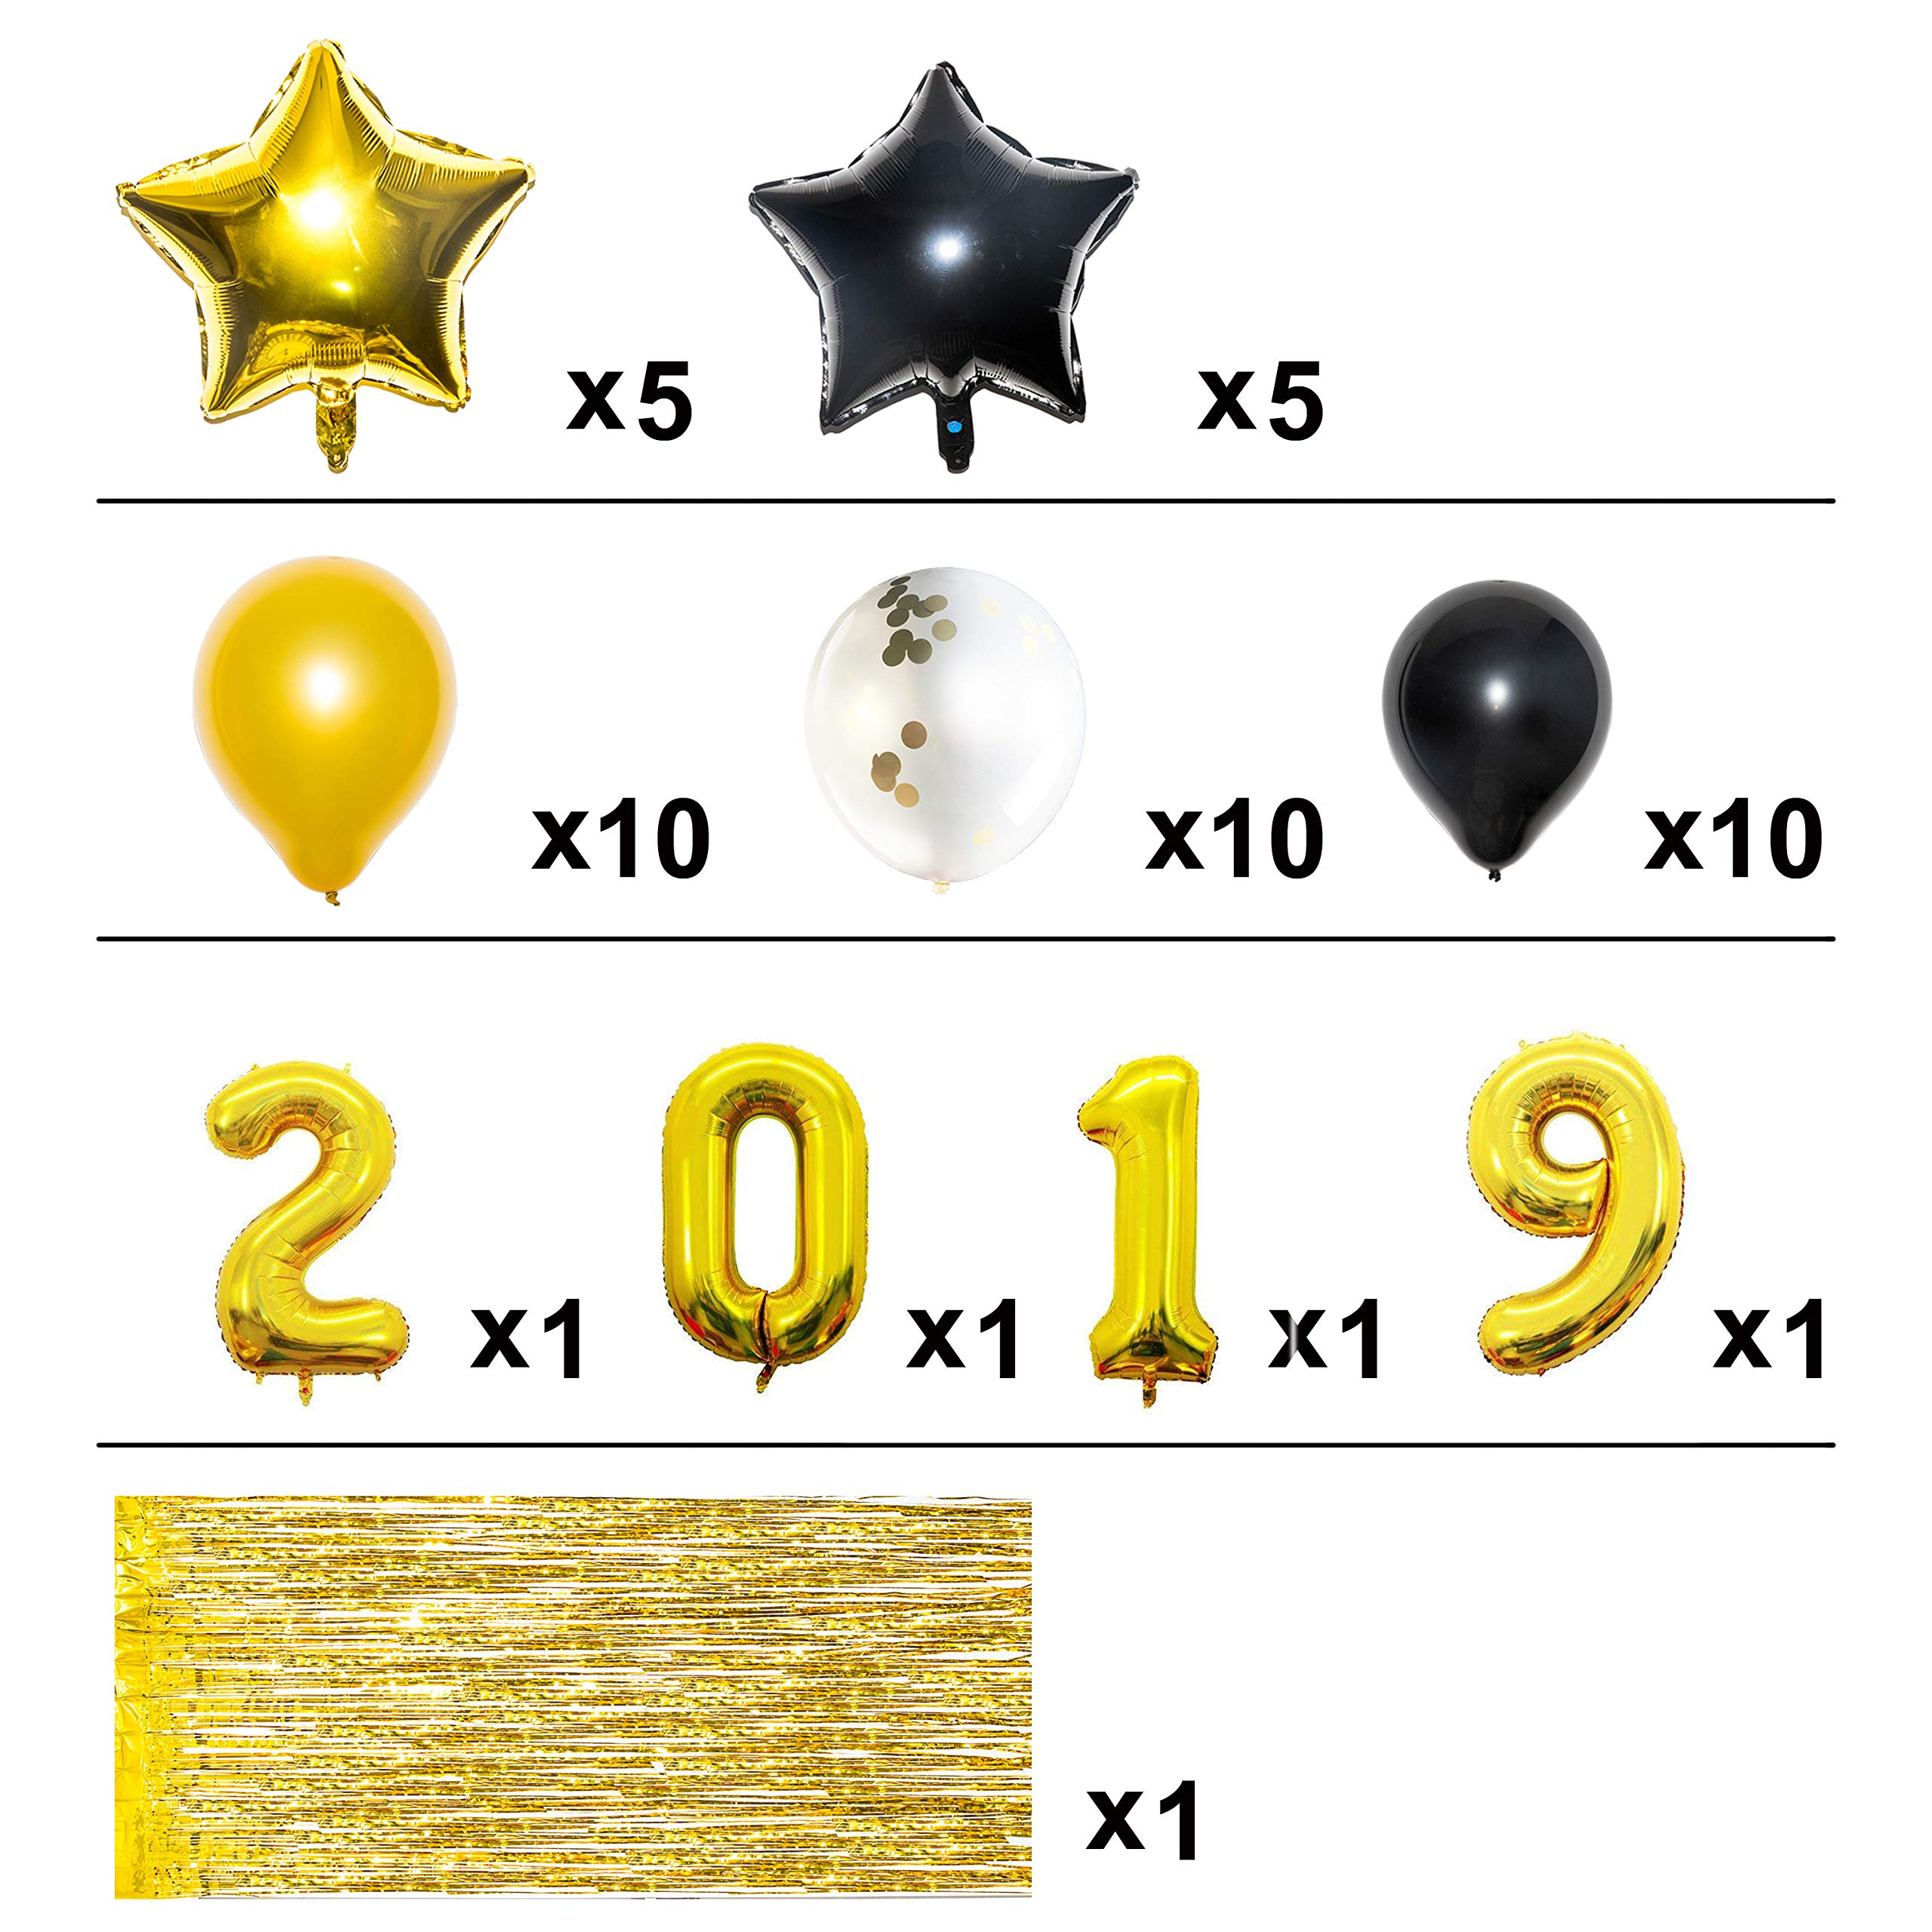 Gold 2019 Graduation Party Balloons Decorations with 10ft Metallic Gold Foil Fringe Curtain Bundle, Pack of 45, Graduation Party Supplies, Large Size, Latex Balloons, Star Balloons, Confetti Balloons by Youngever (Image #4)